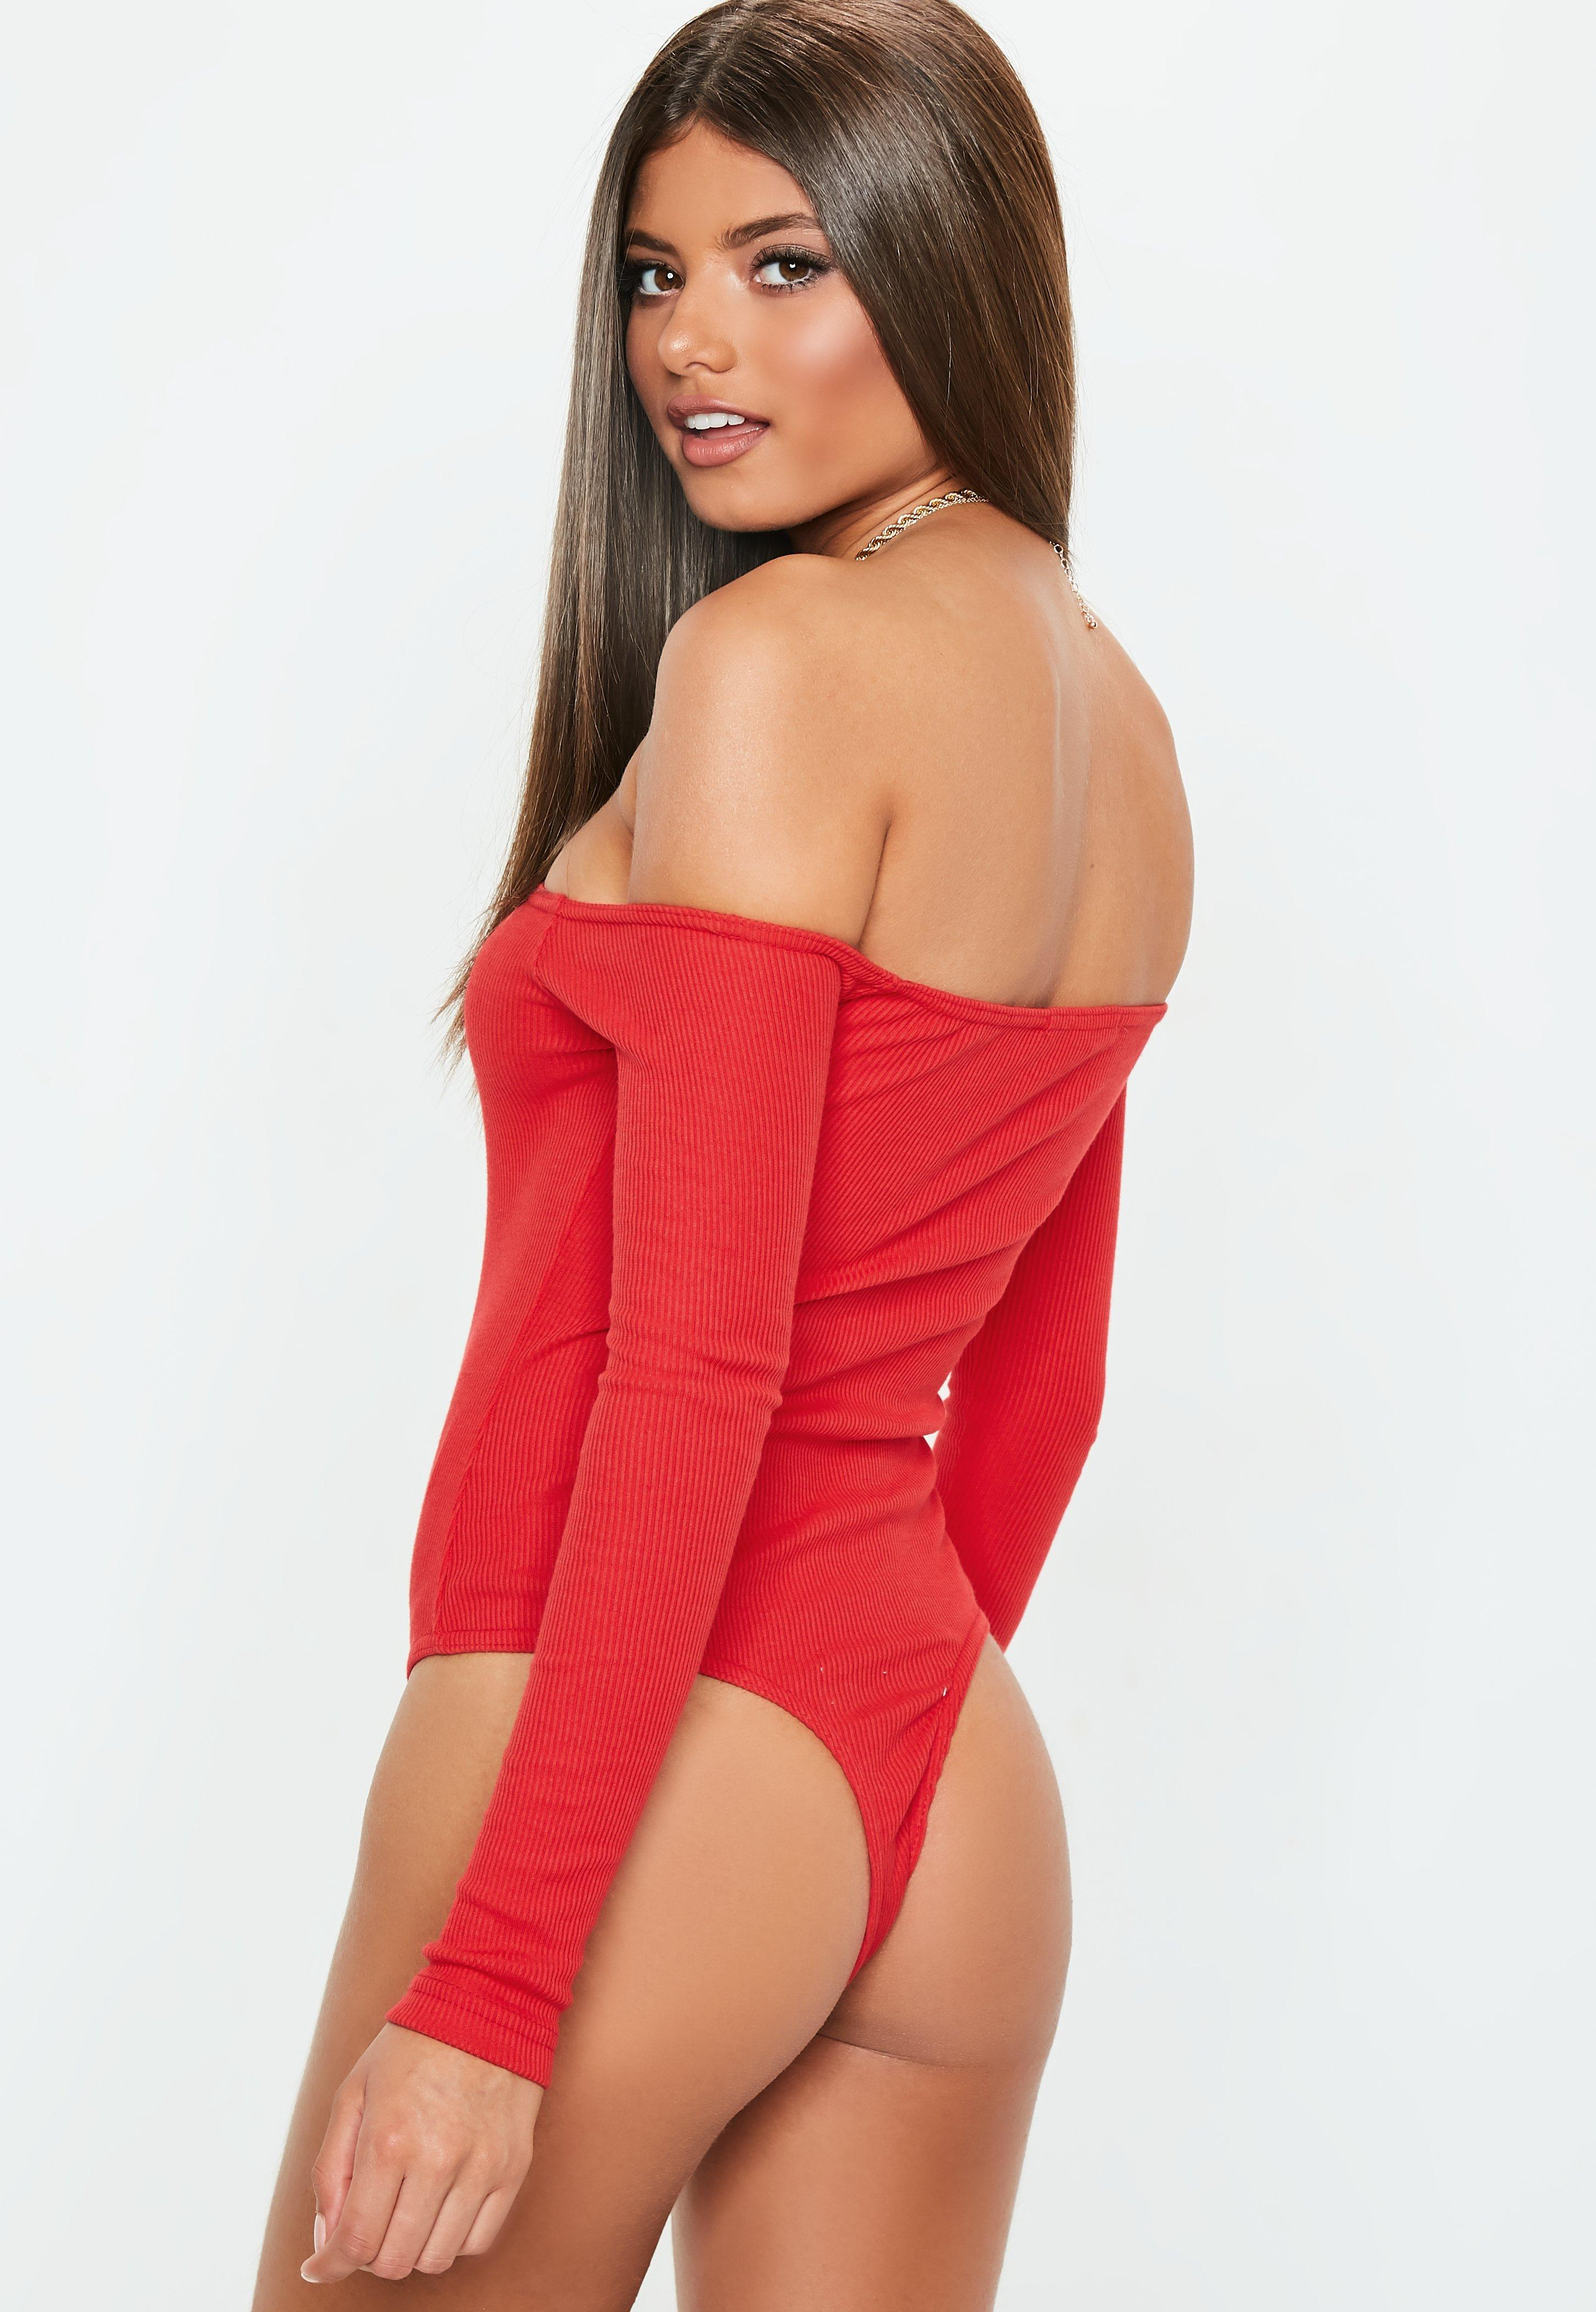 Missguided - Red Button Front Long Sleeve Ribbed Bardot Bodysuit - Lyst.  View fullscreen 2d1bbc7d7